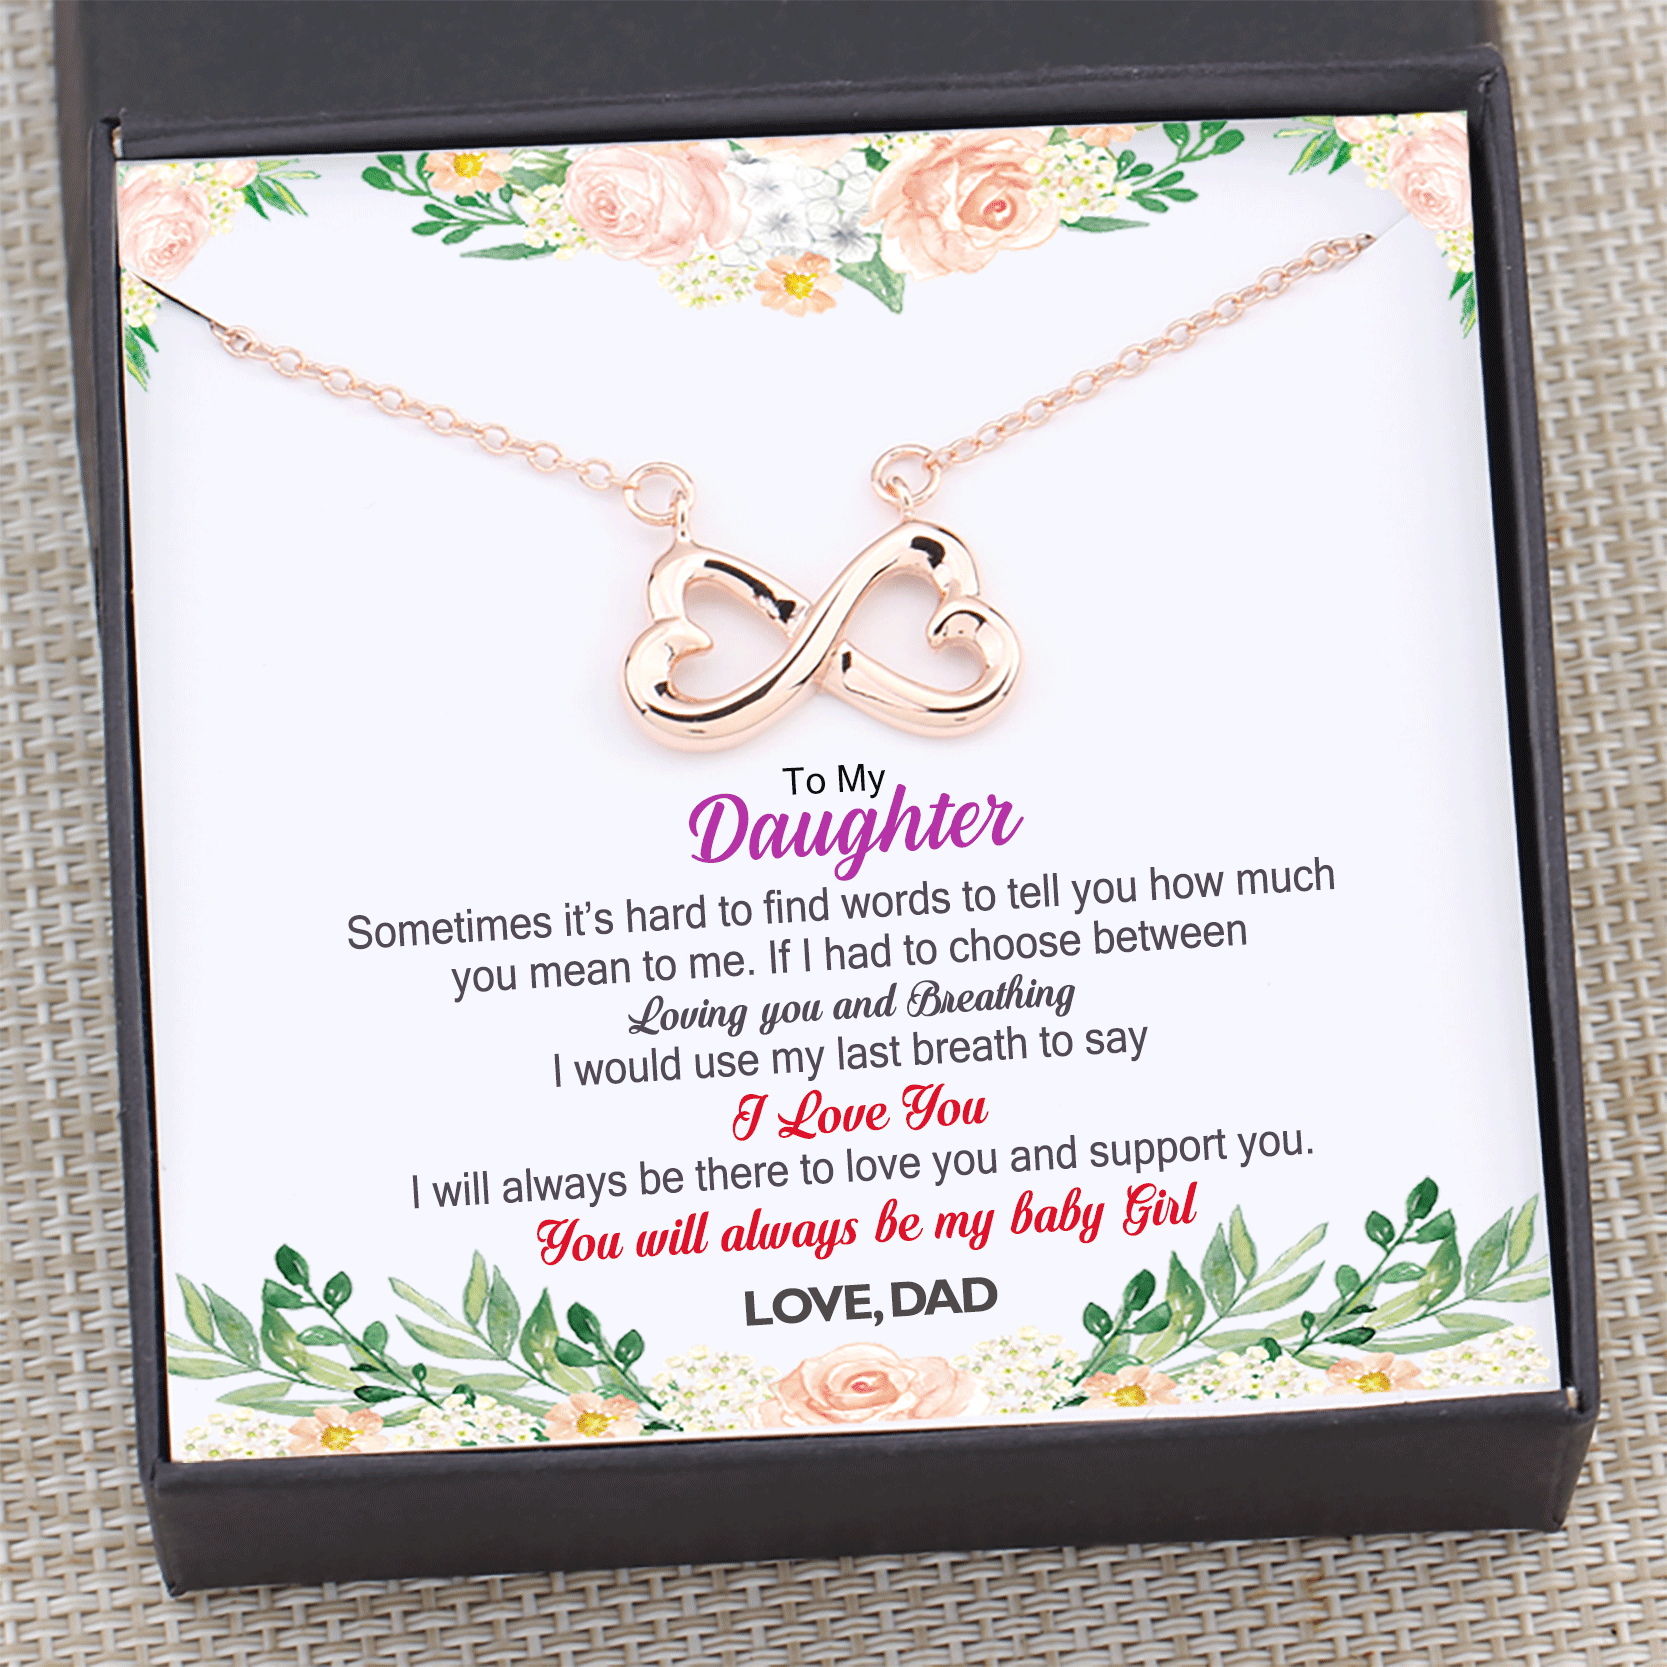 Dad to Daughter - You Will Always Be My Baby Girl Necklace Gift Box